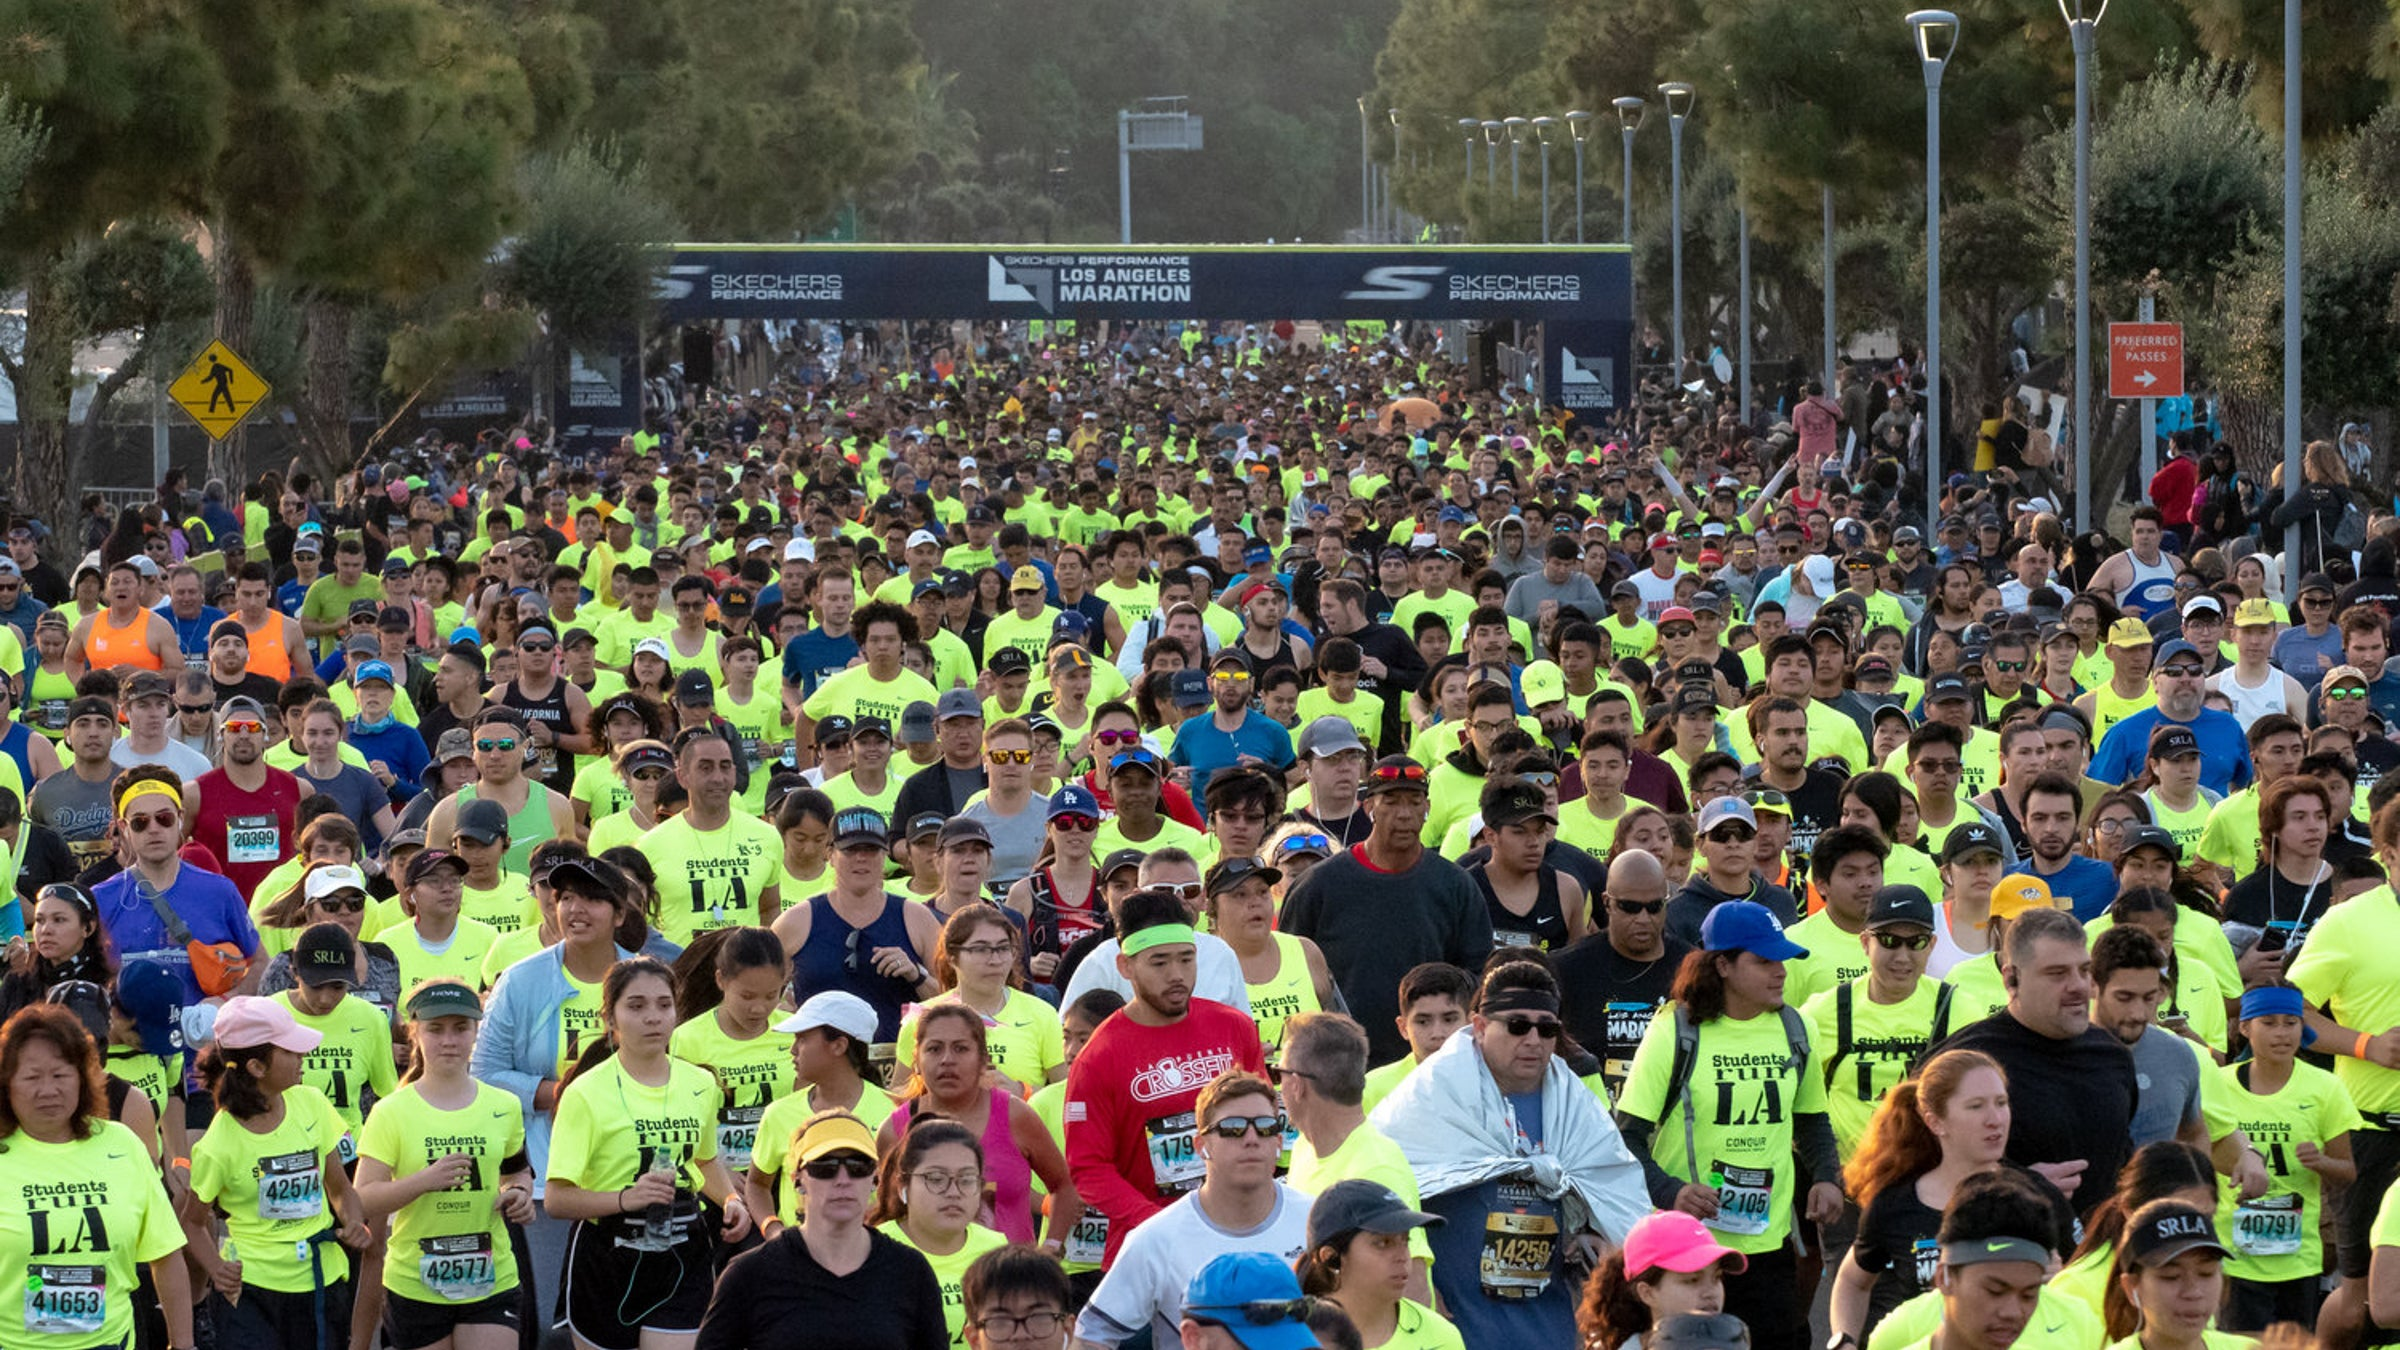 Shot of the crowd at the start of the LA Marathon